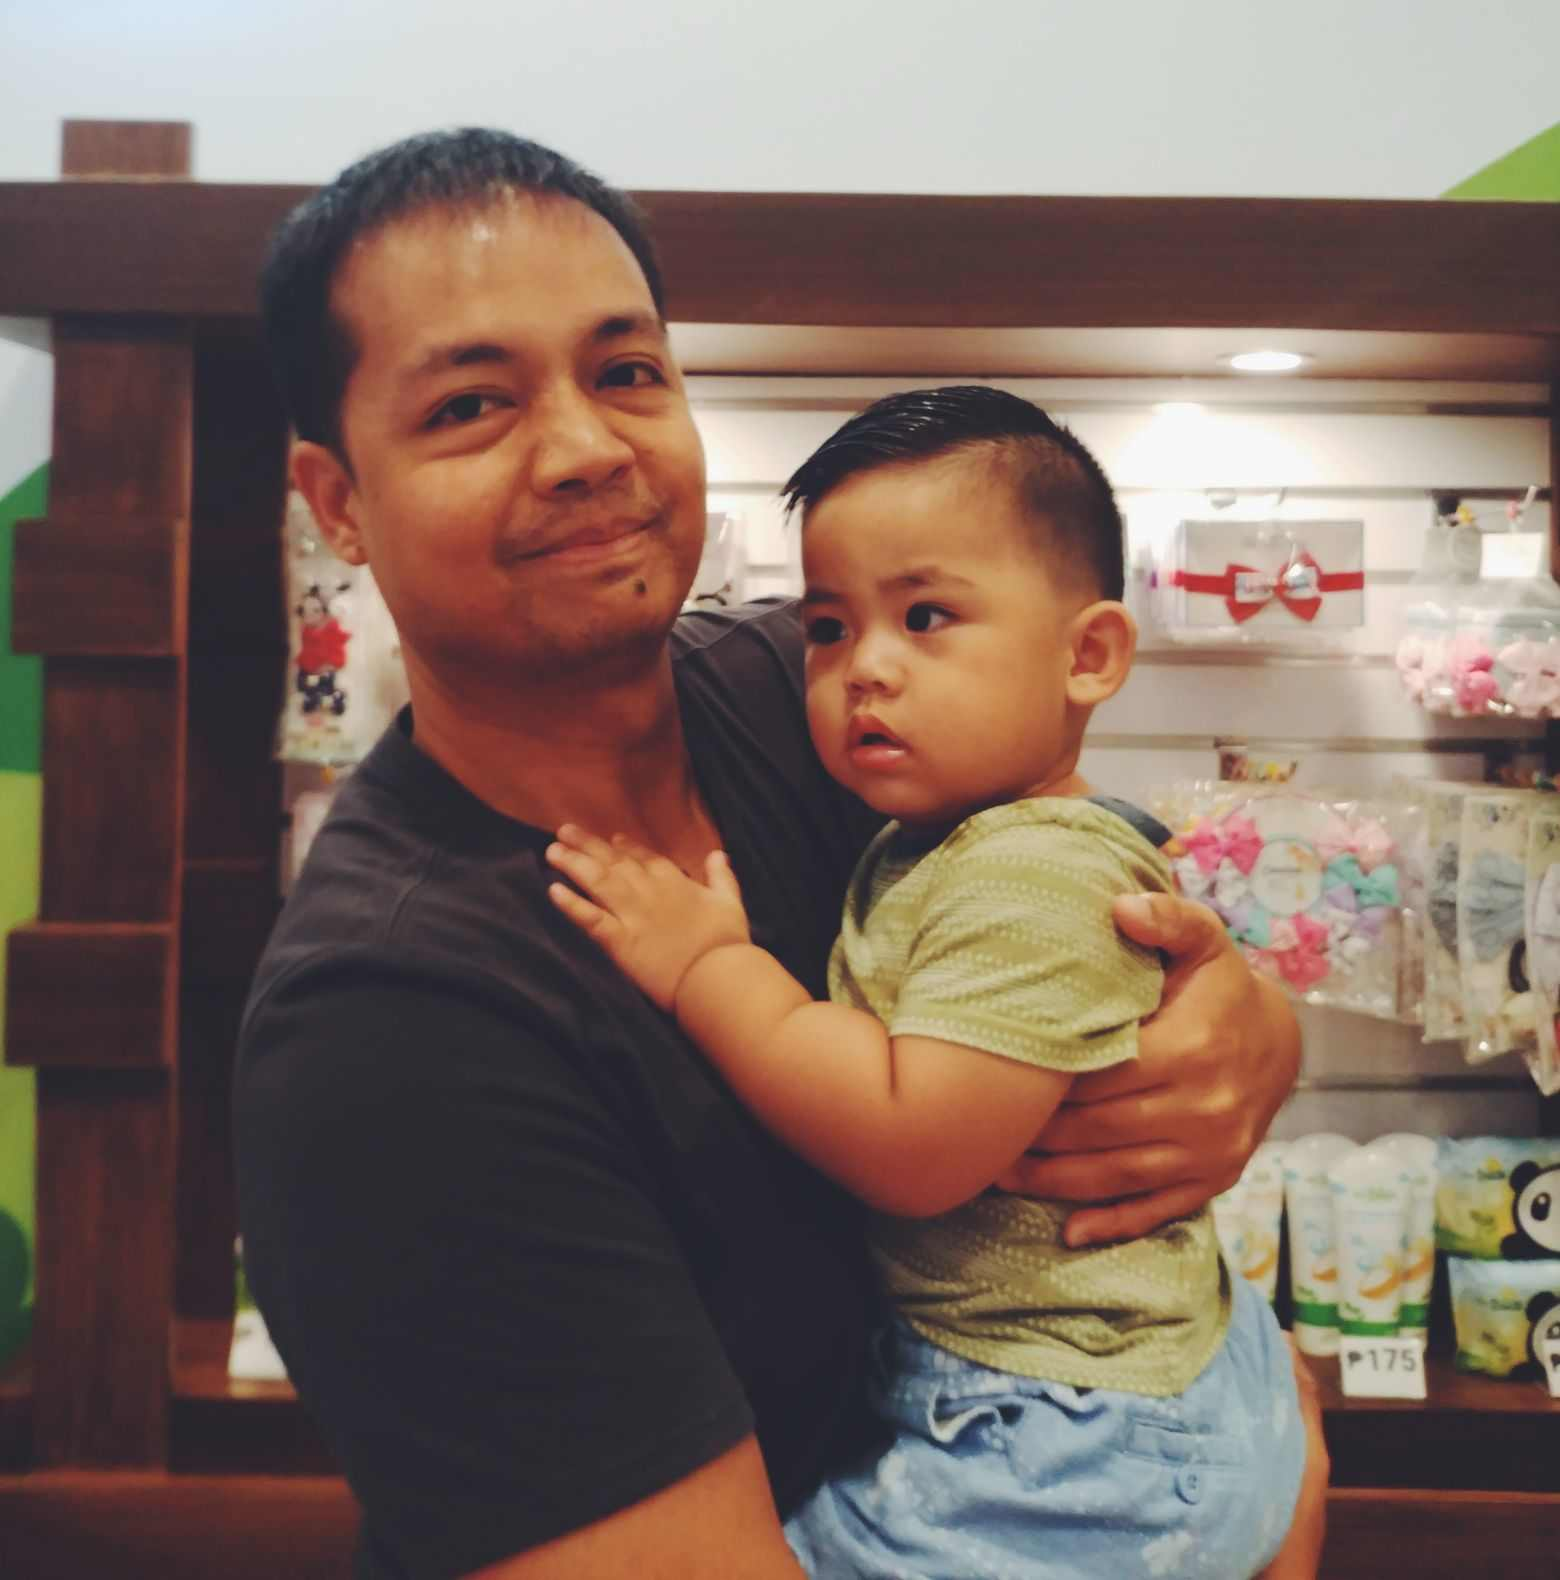 Miguel's second haircut at Cuts 4 Tots SM Fairview